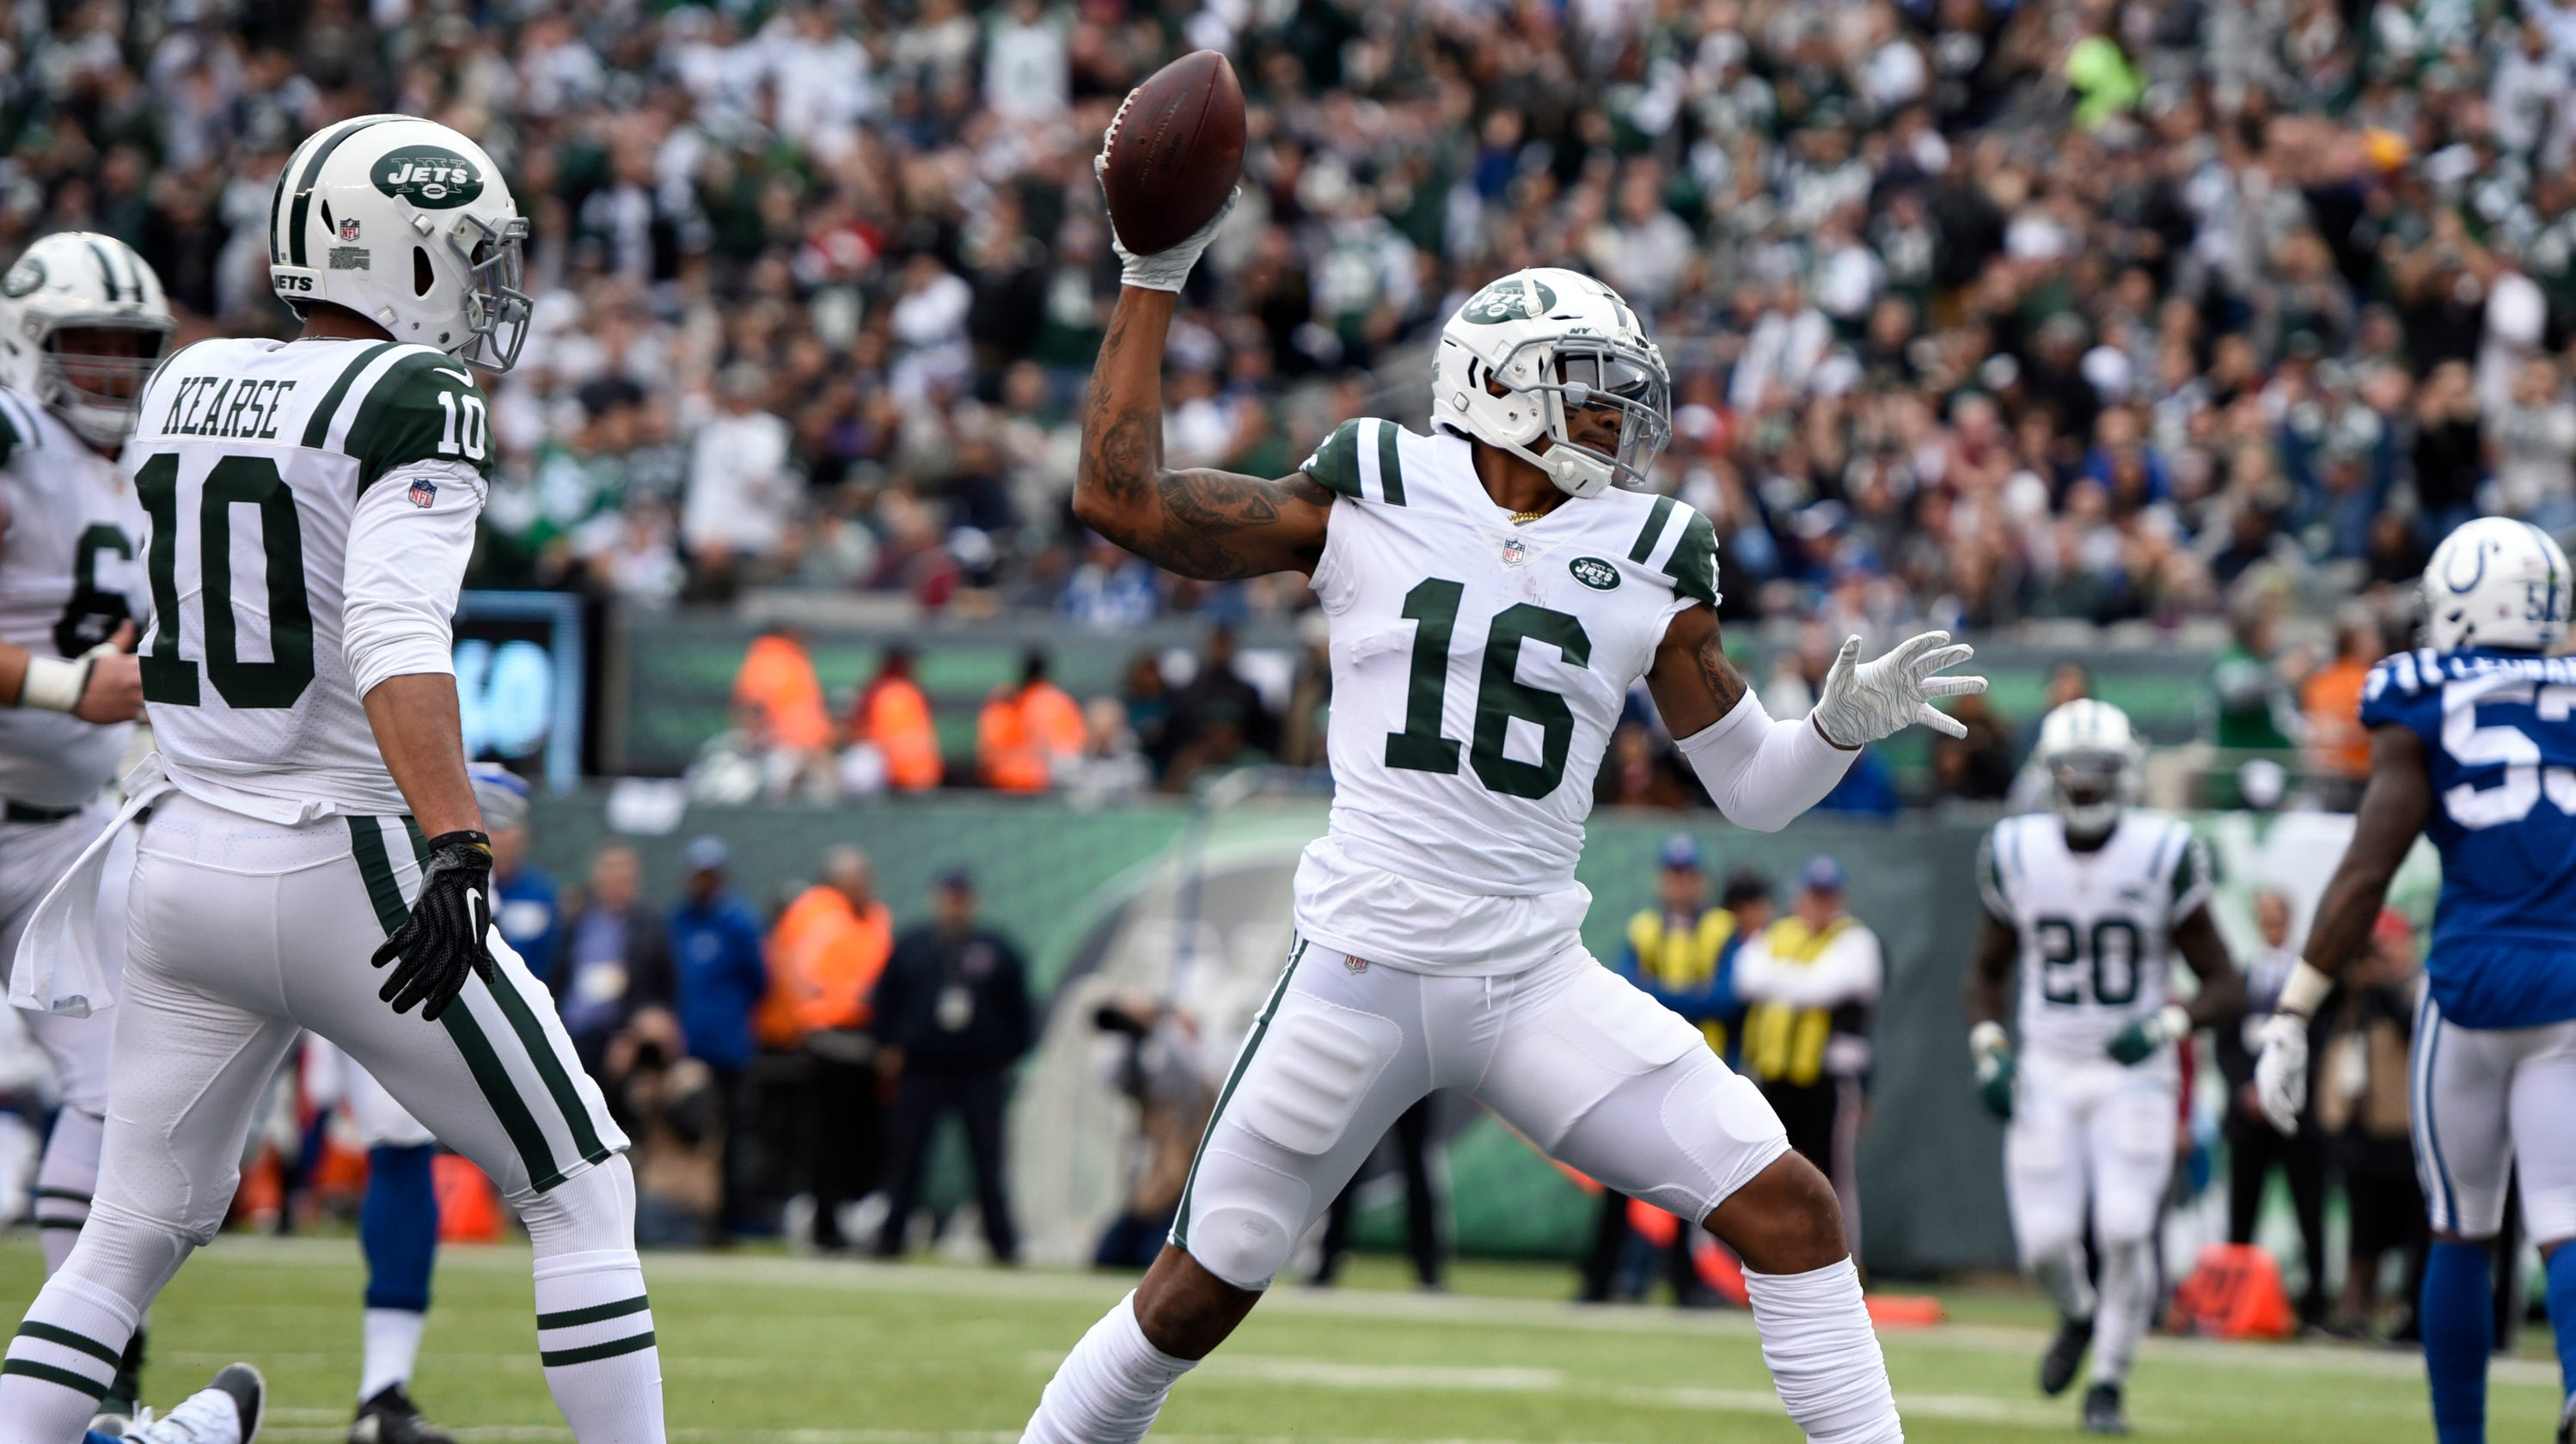 Terrelle Pryor released by NY Jets due to injury de4bee916